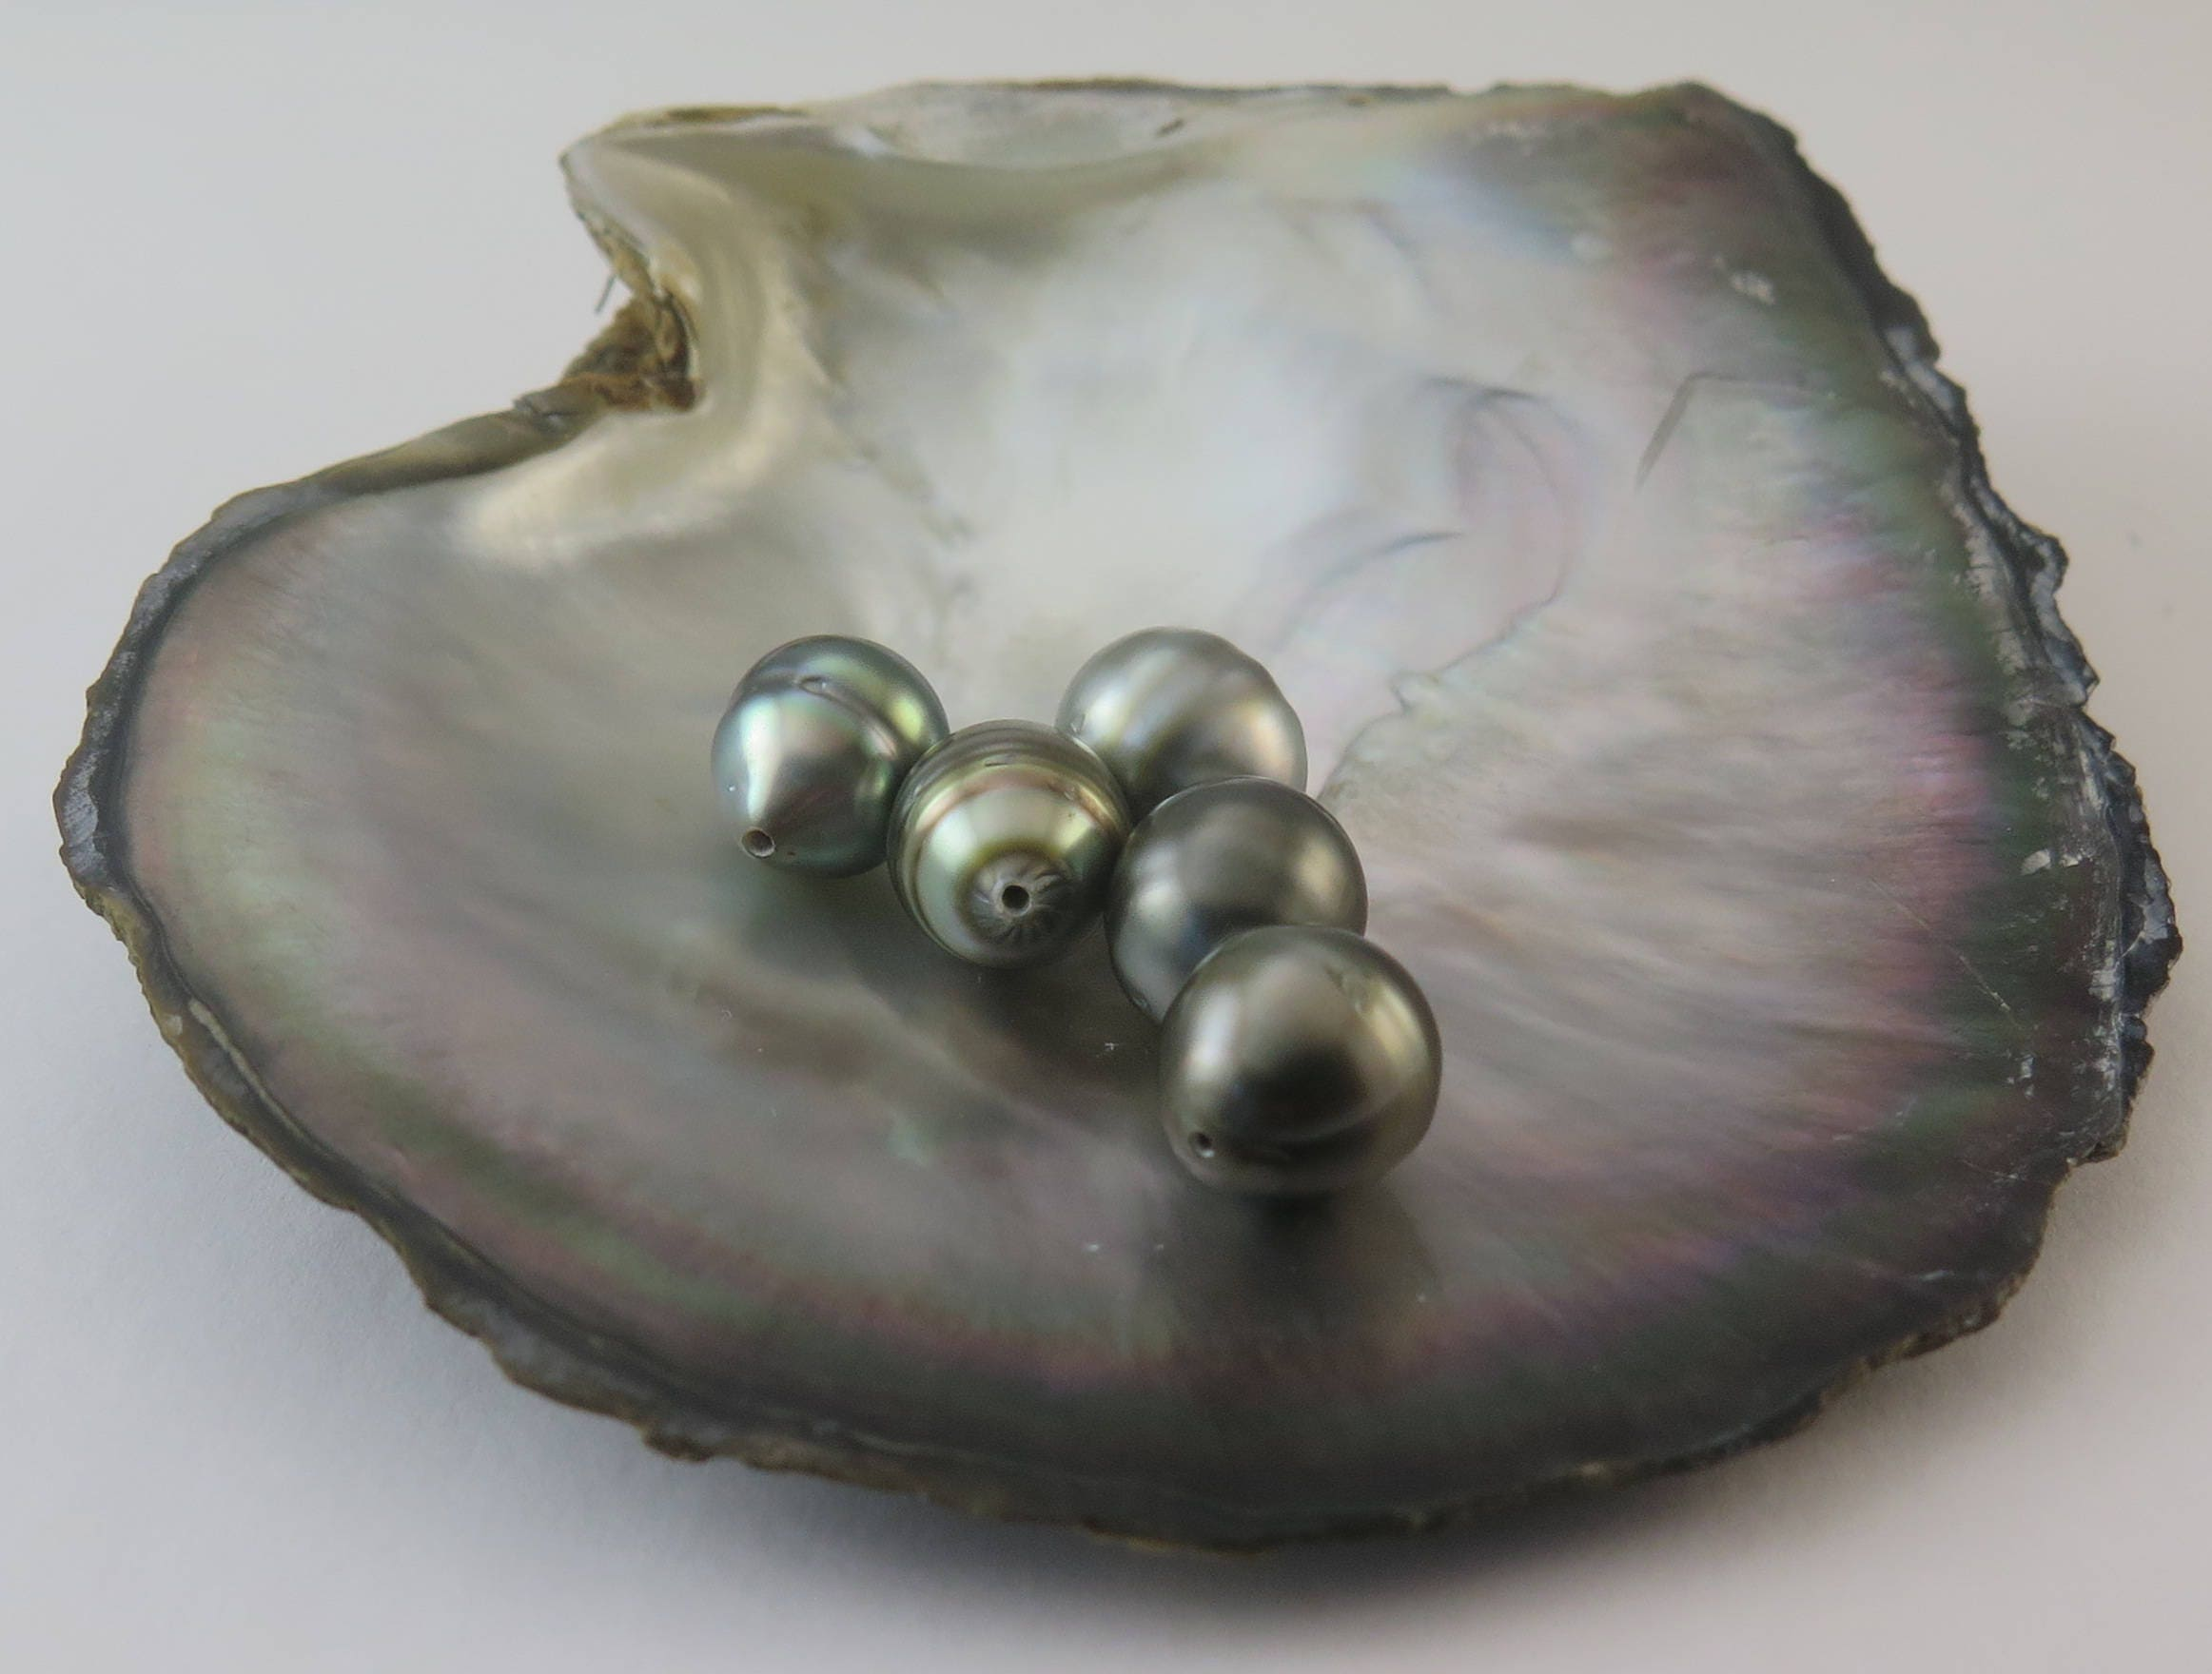 Light 12.50 Dollars a Pearl Pearl size: 09.00-09.99mm Drilled to 1mm SAVE 10/%  PACK Of 5 Circle Tahitian Black Pearls #7 AA